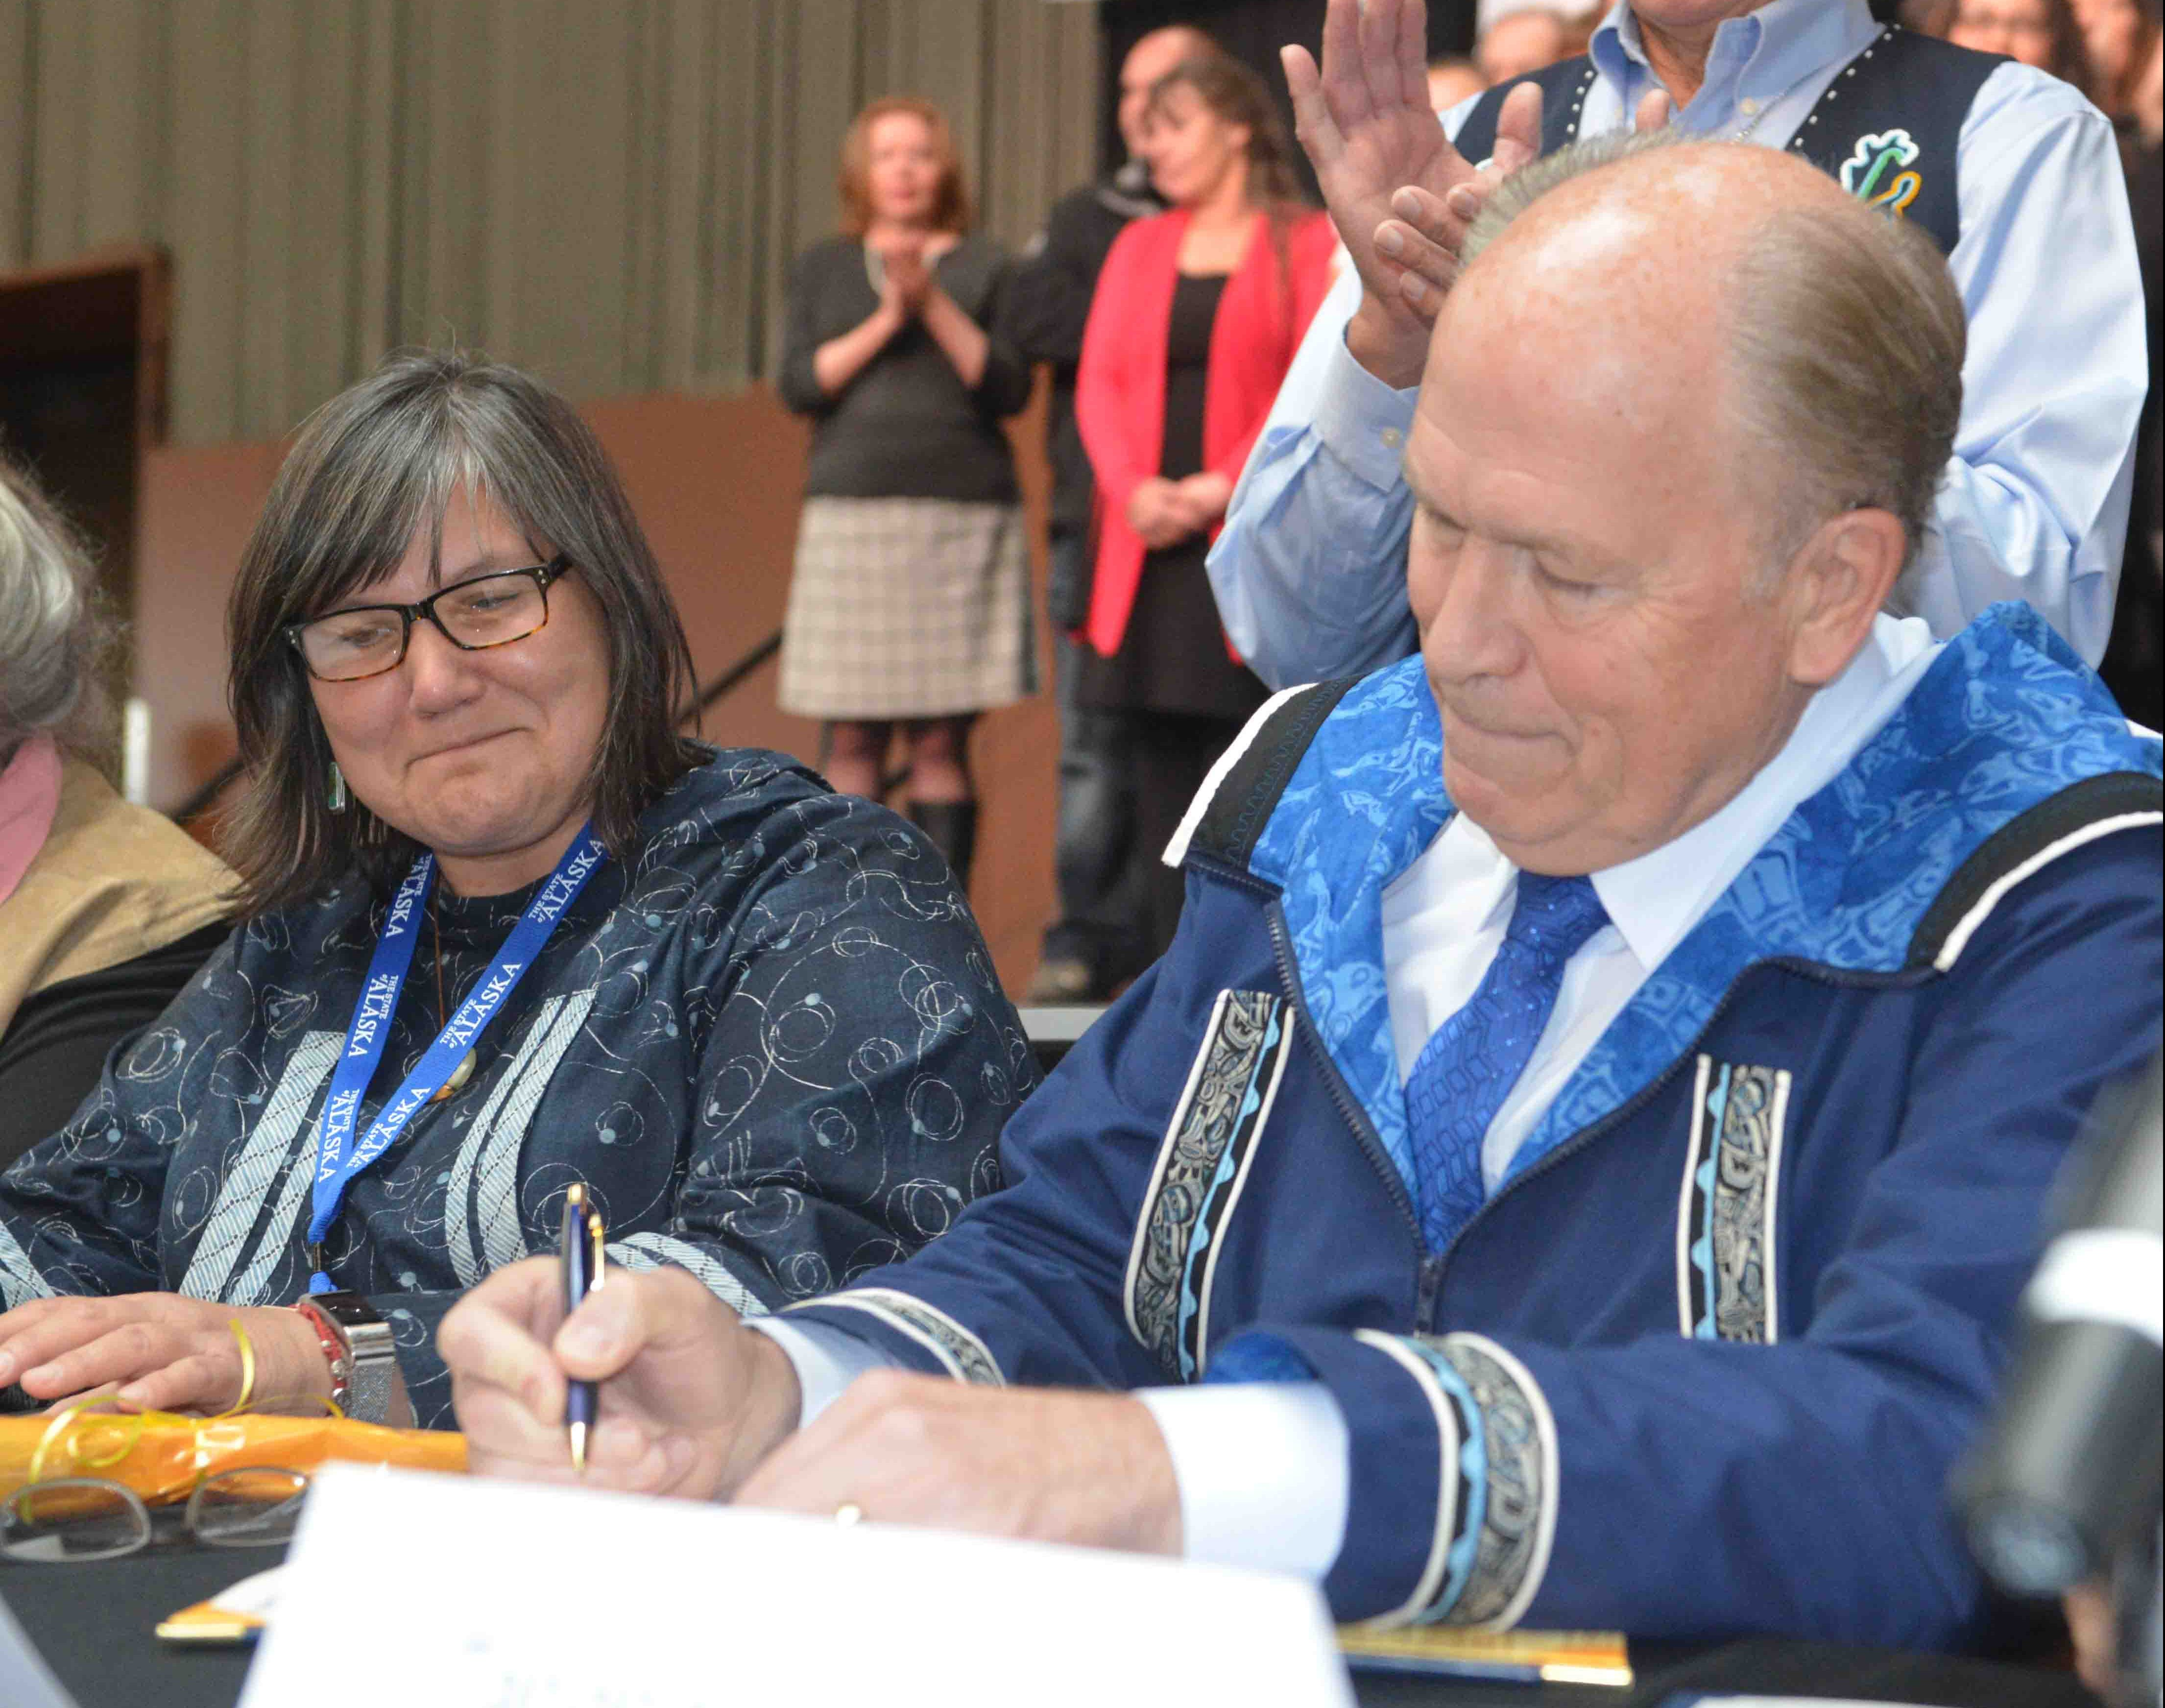 Alaska and its tribes sign child services compact alaska - Garden state veterinary services ...